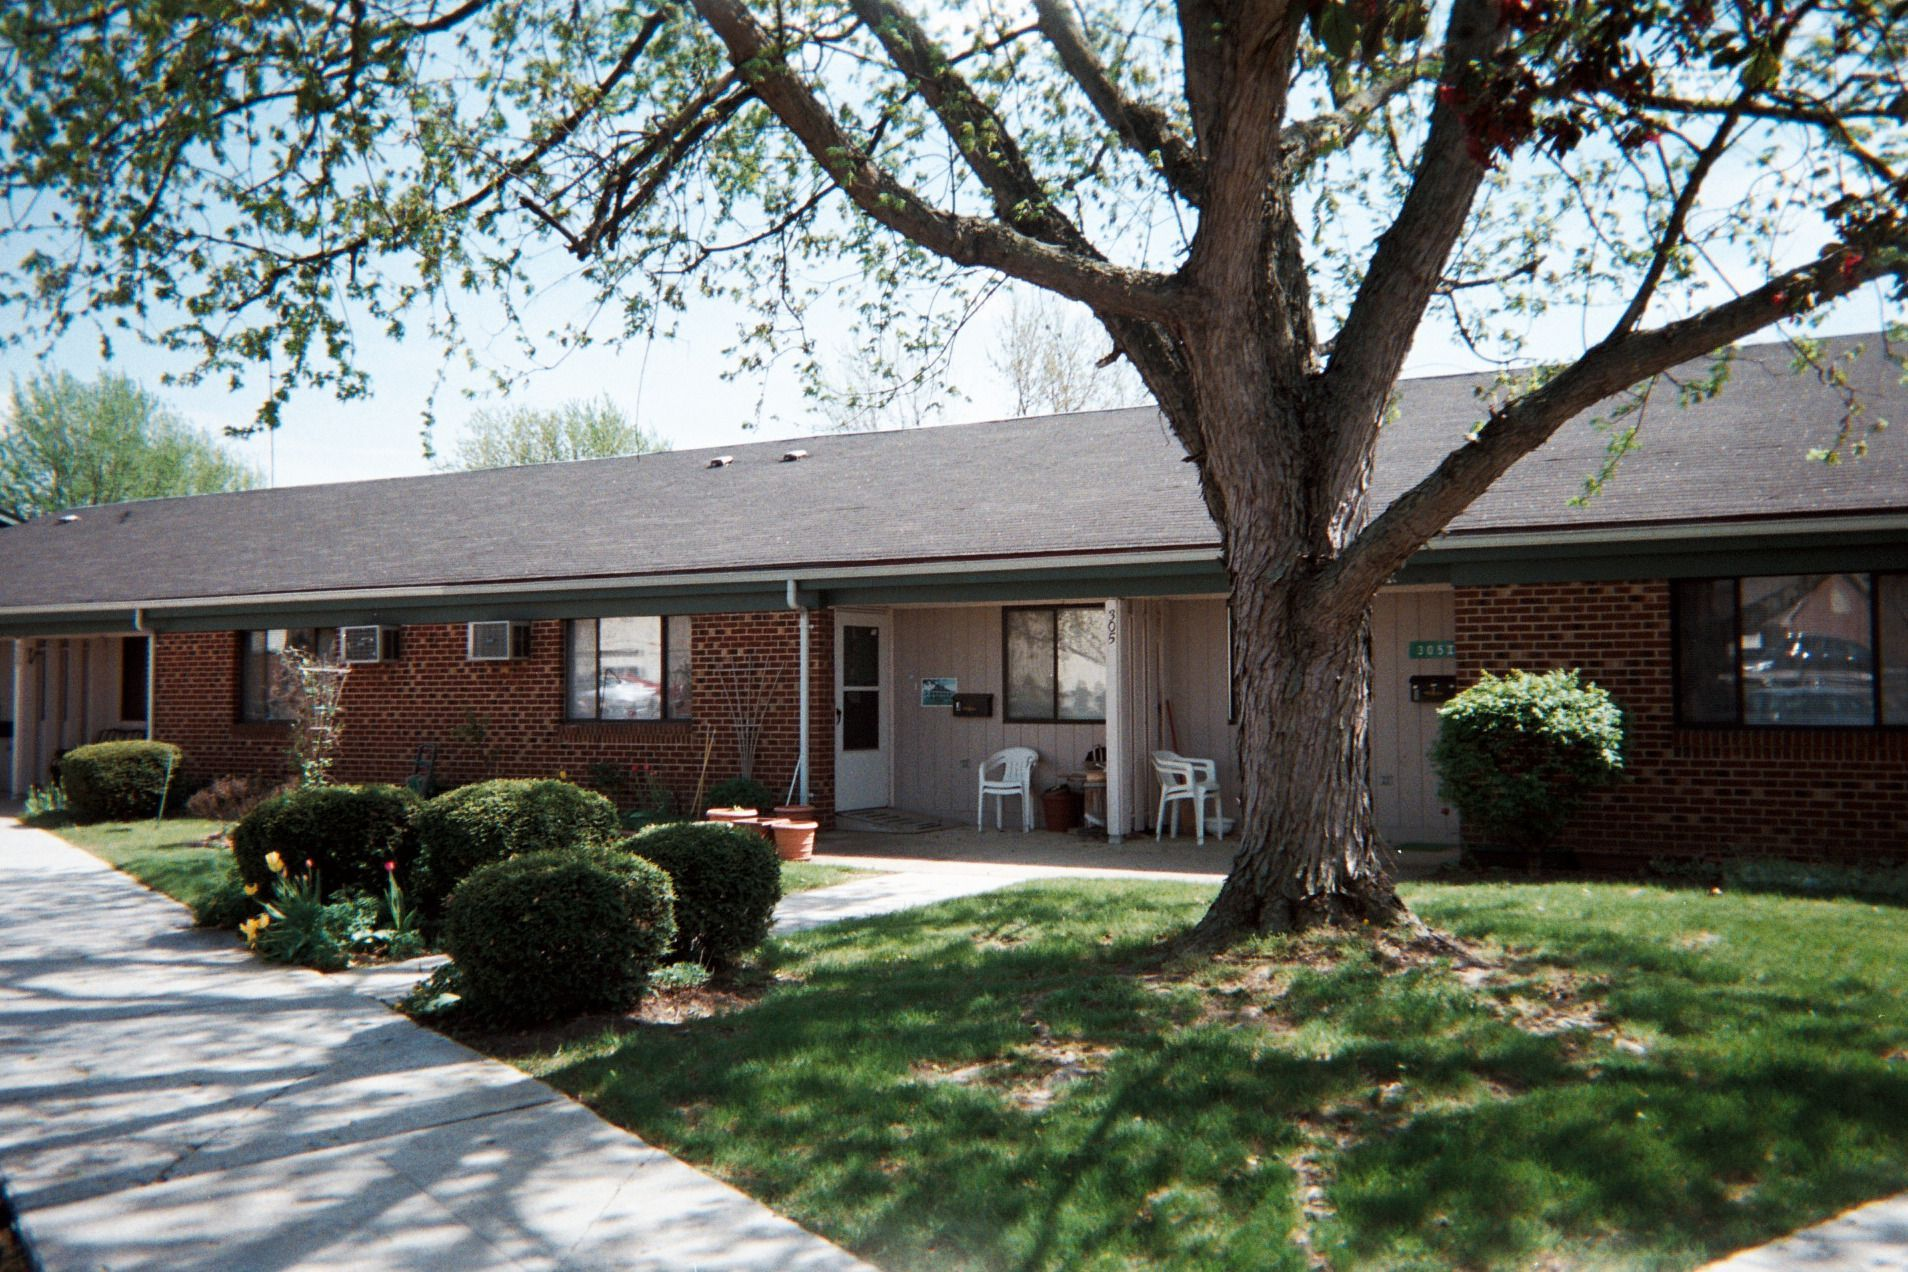 Mapleview Senior Apartments